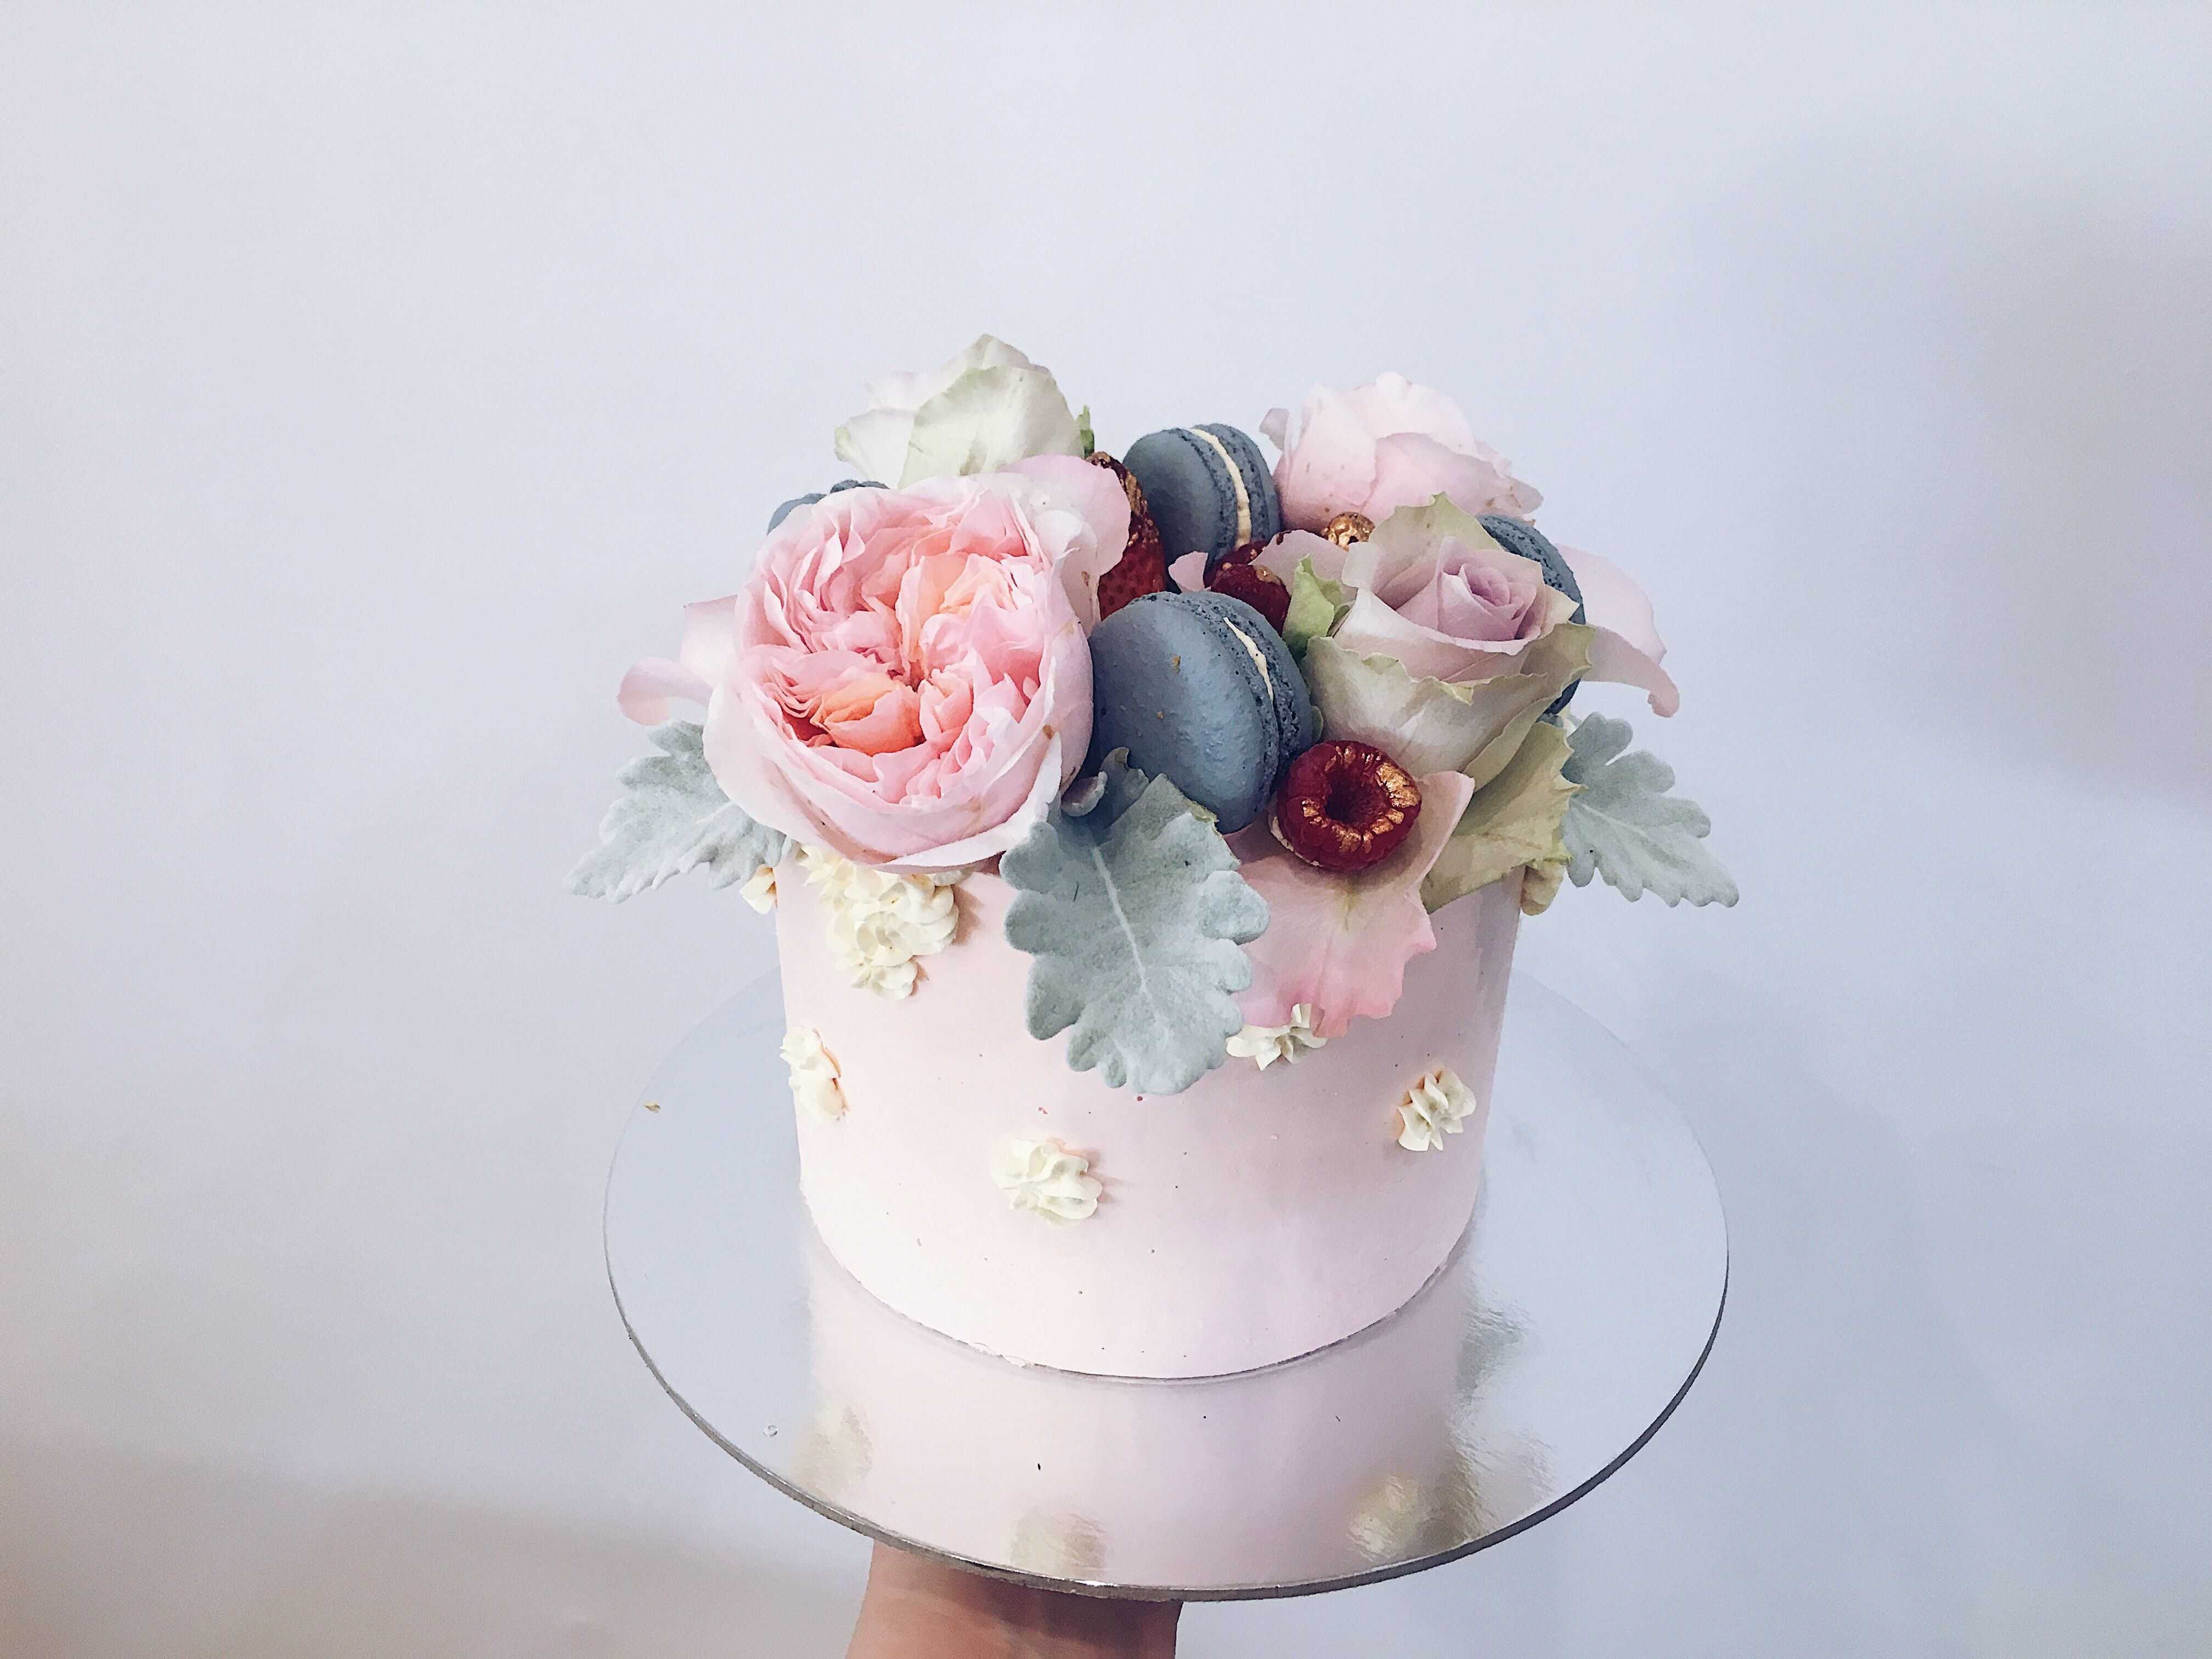 A Love Of The Outdoors Inspired This Couple S Wedding Wedding Cake Simple Elegant Simple Wedding Cake Elegant Wedding Cakes